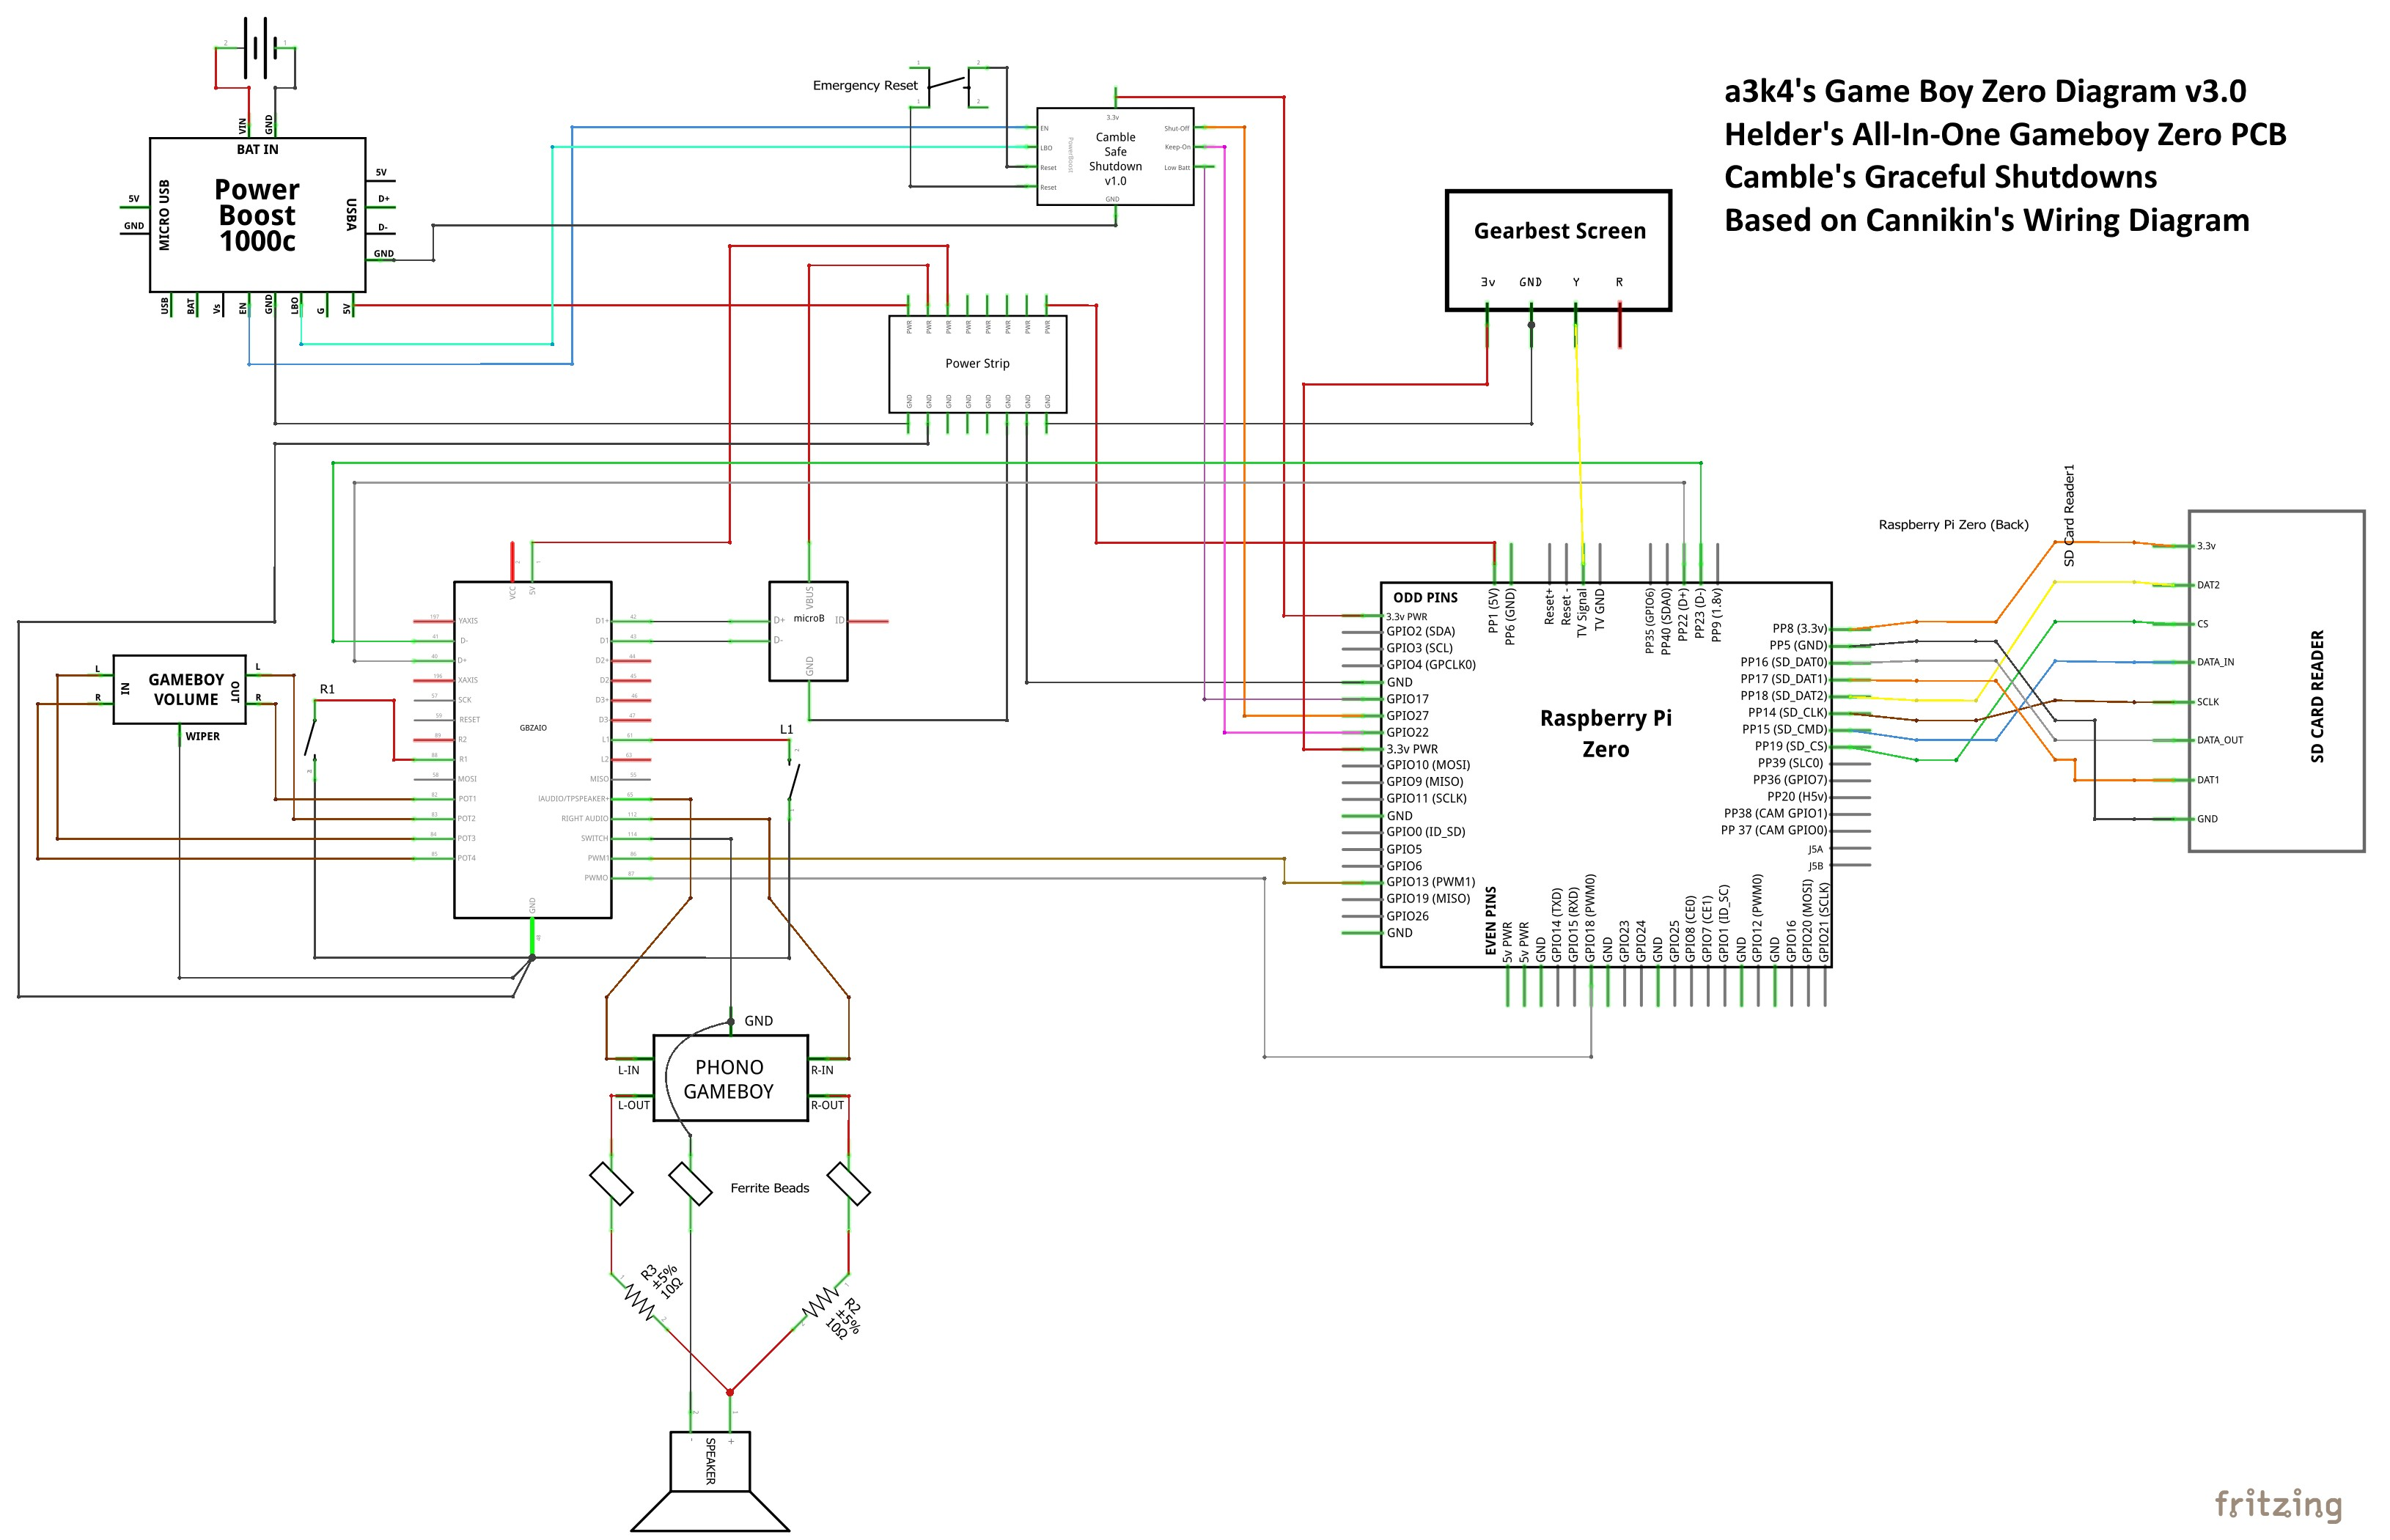 Wiring diagrams v2 5 Useful for non DMG audio and if you re not using Camble s Graceful Shutdown